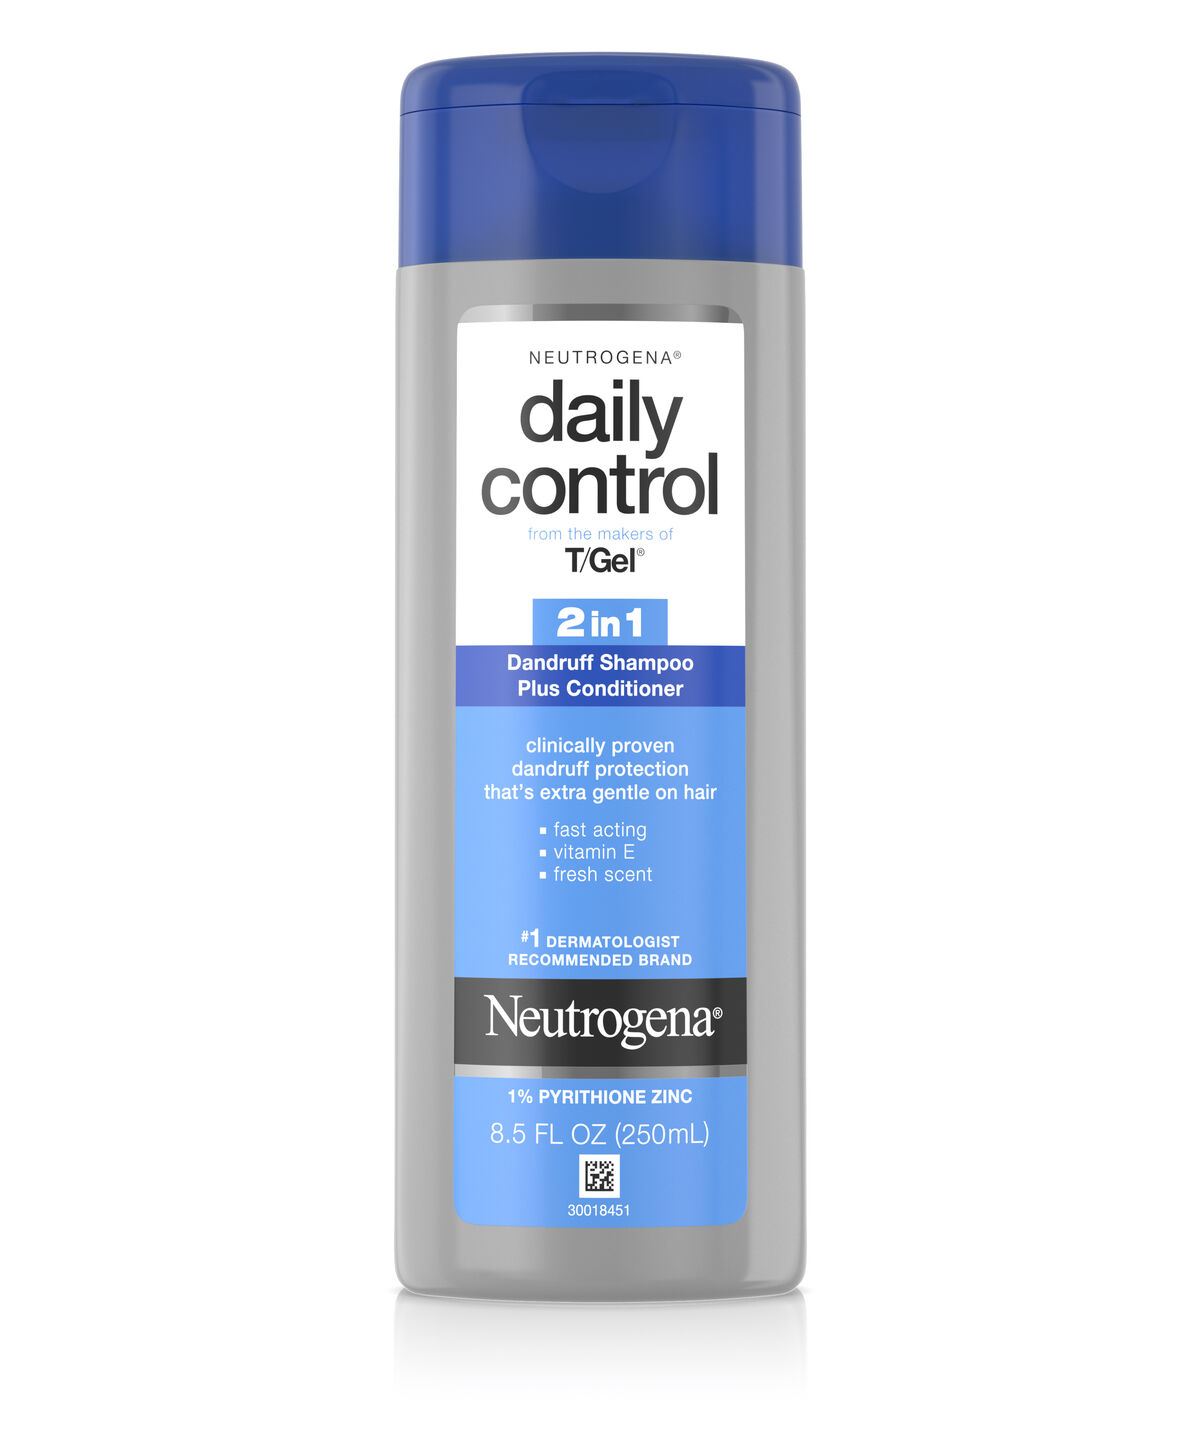 T Gel Daily Control Reg 2 In 1 Dandruff Shampoo Plus Conditioner